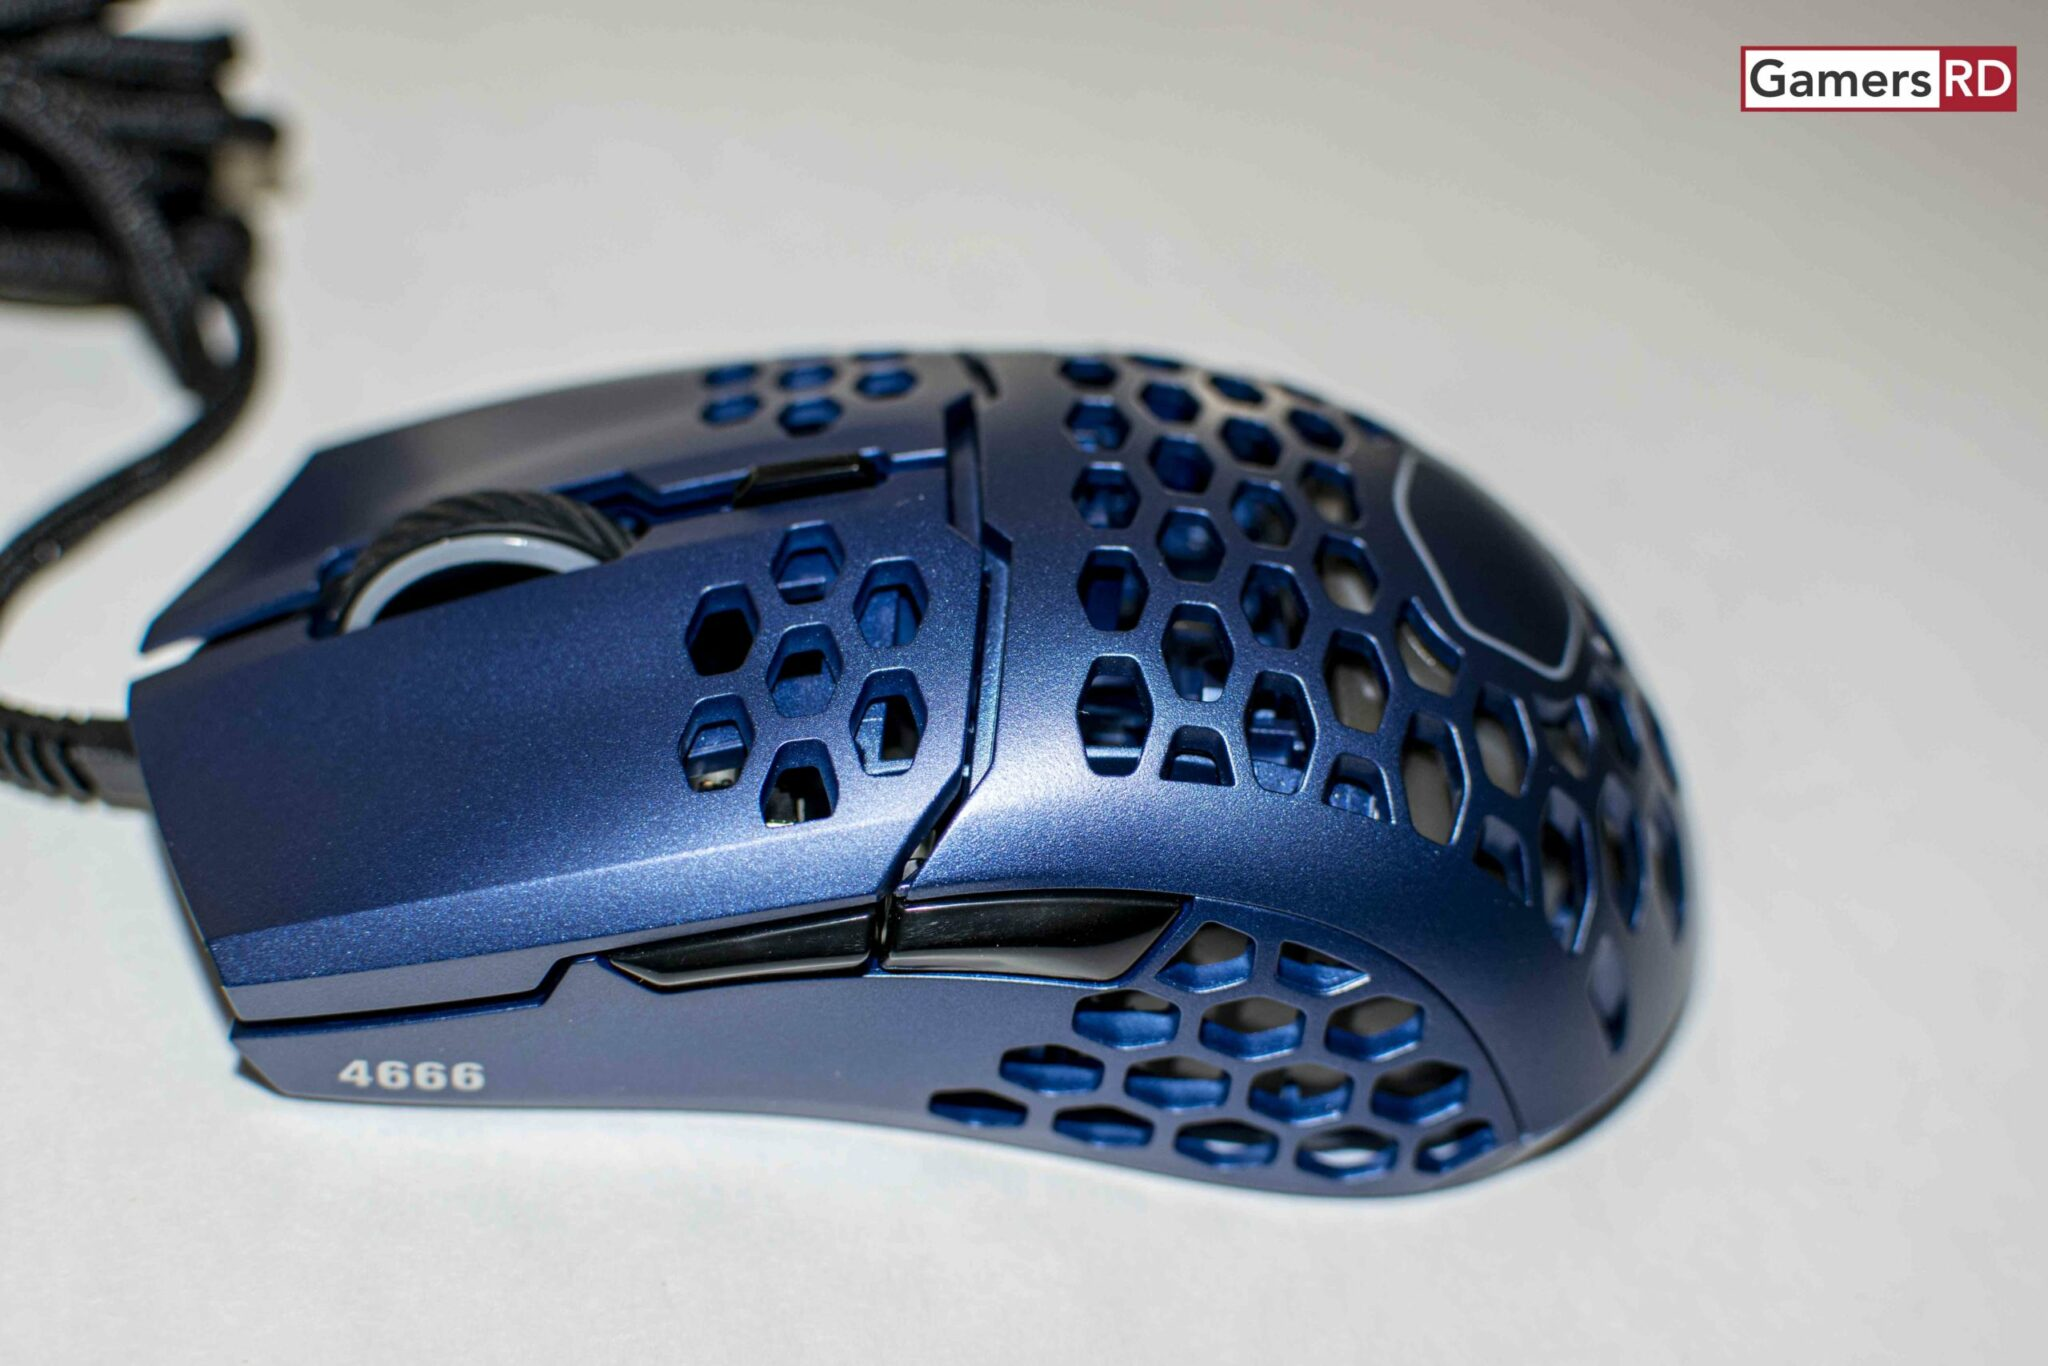 Cooler Master MM711 Gaming Mouse Review, 2 GamersRD